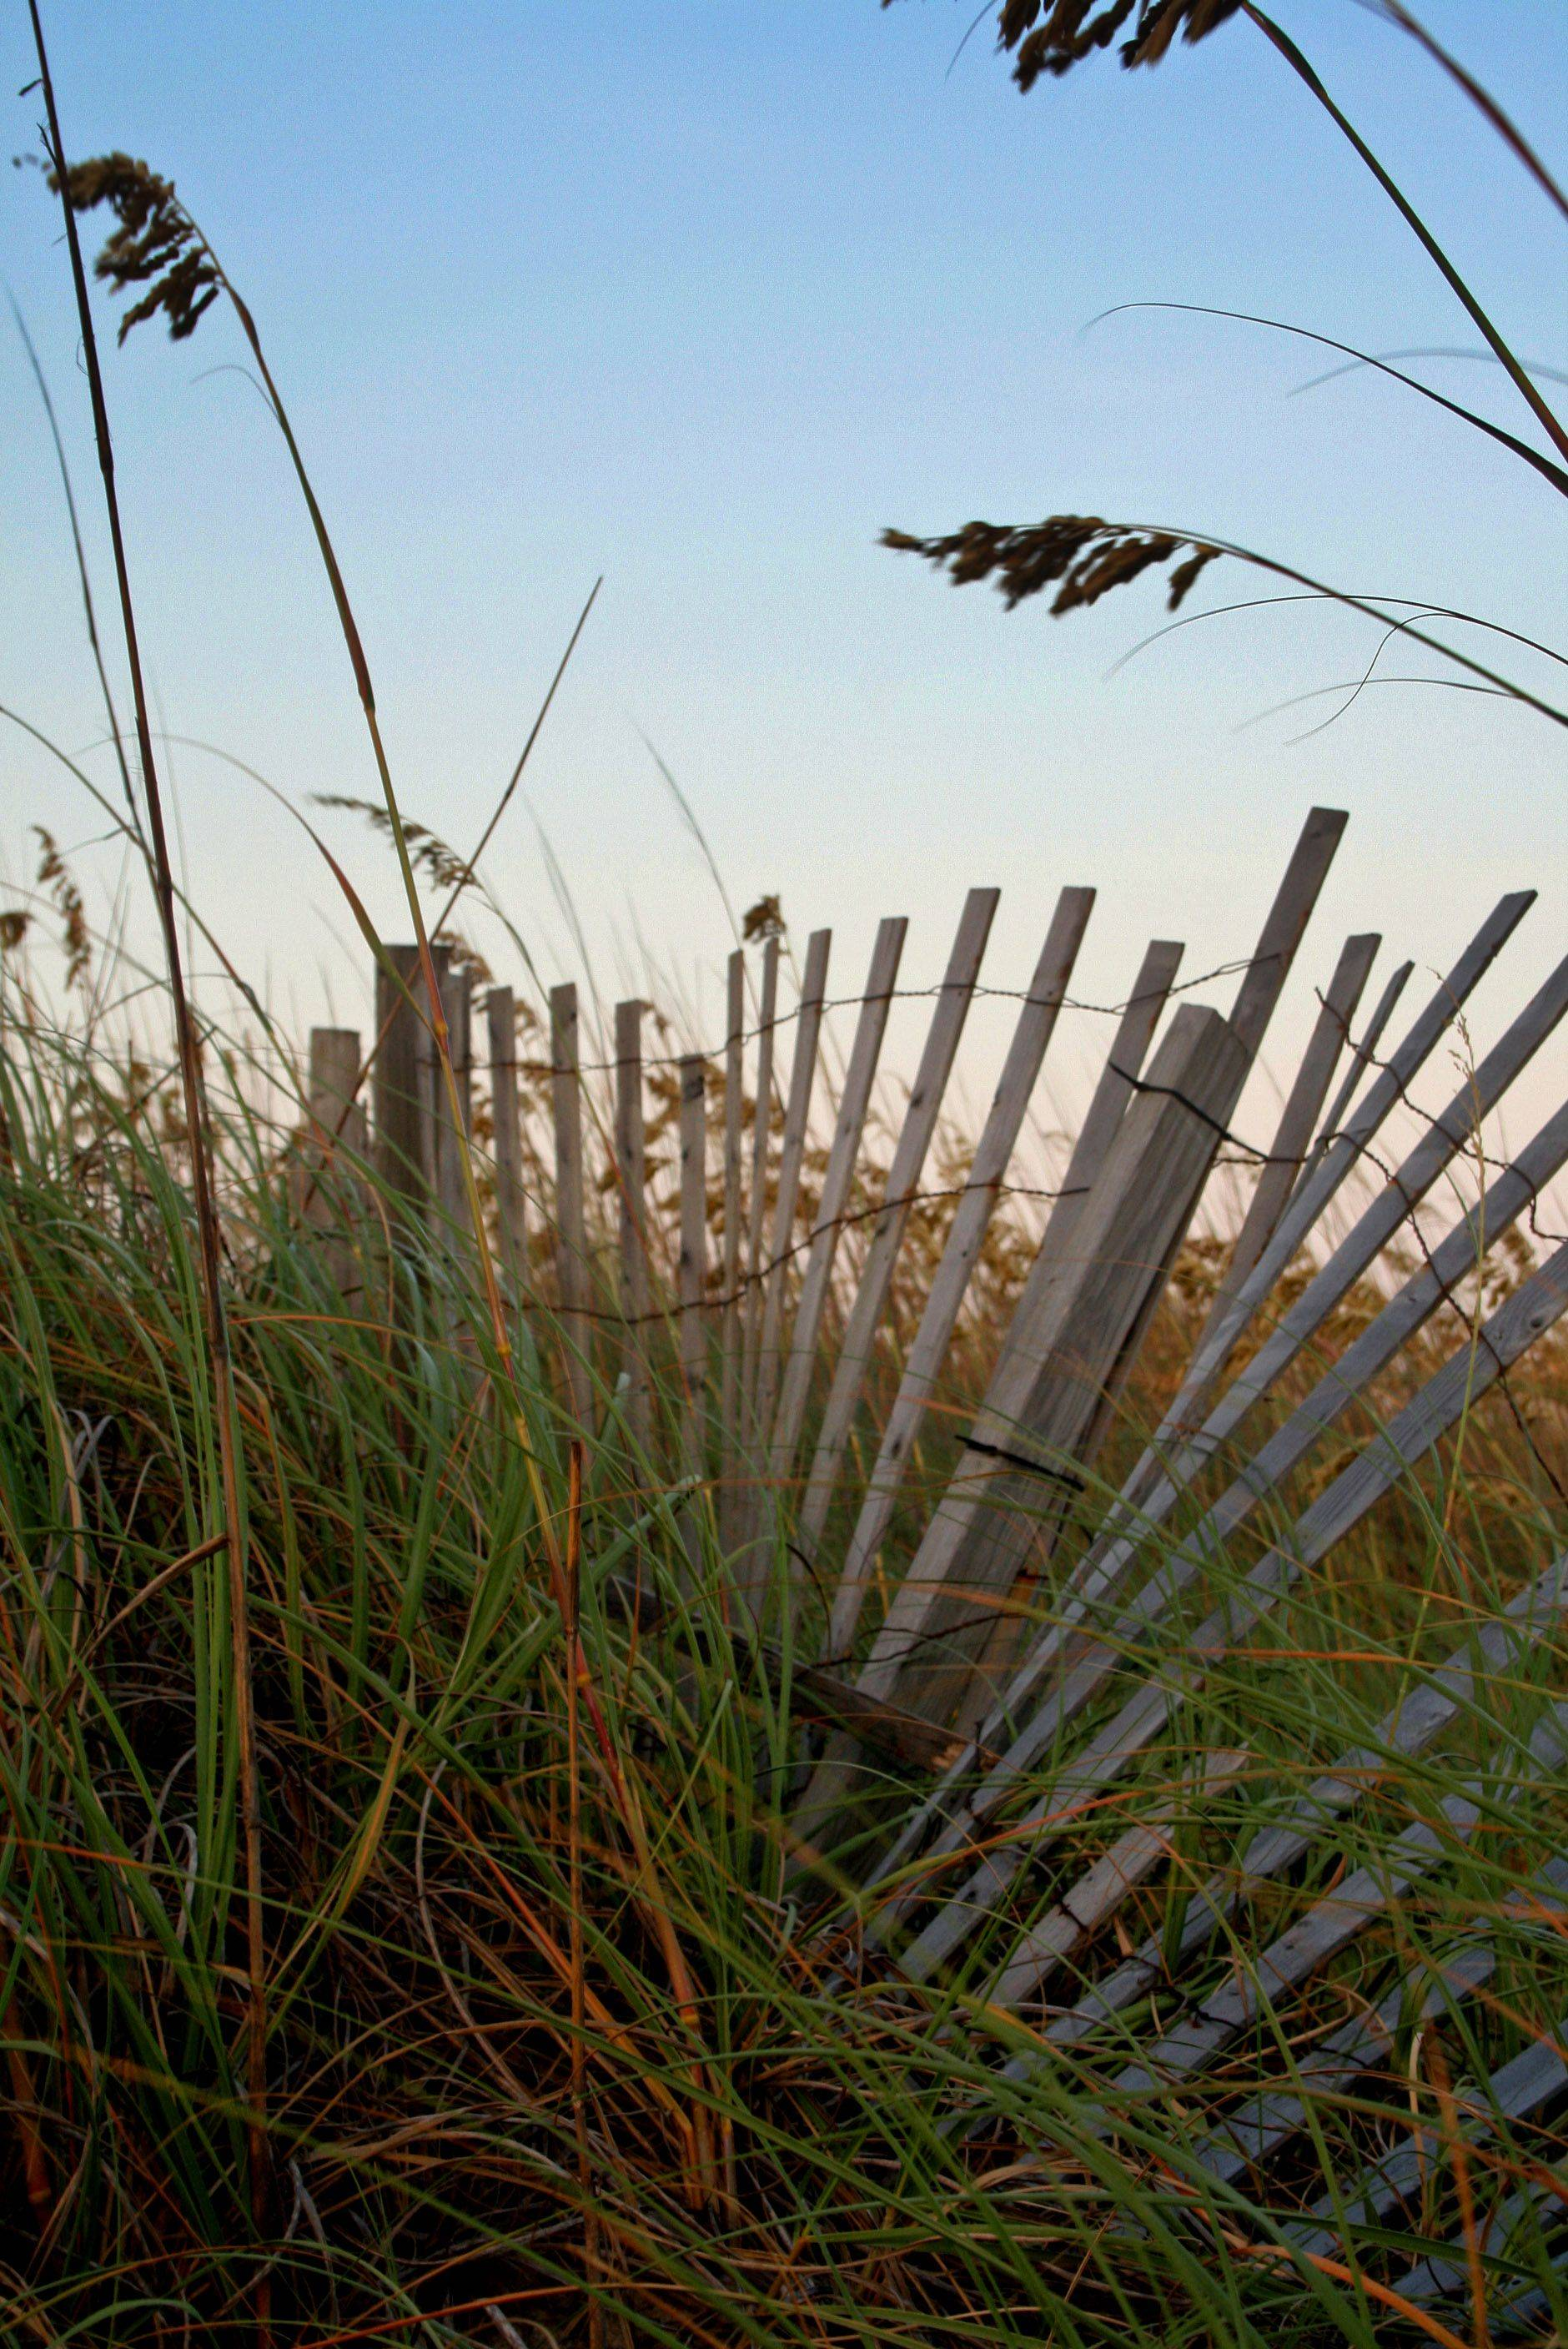 The fence stands in the middle of tall sea oats having seen better days, twisted and blown over by the wind and surf over the years in Cape Hatteras, NC last summer.